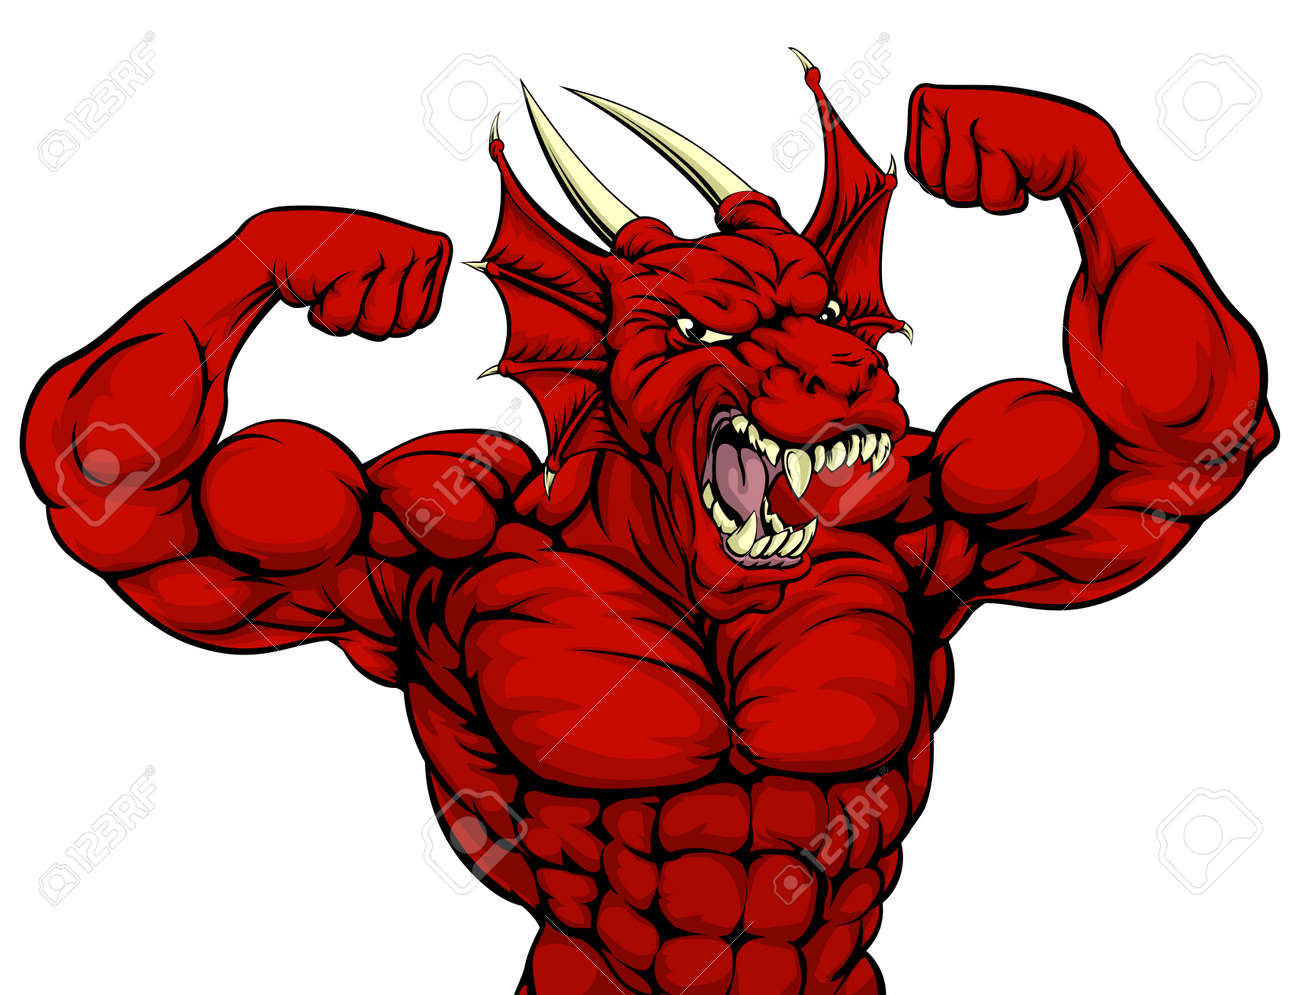 Cartoon Tough Mean Strong Red Dragon Sports Mascot Showing His ...